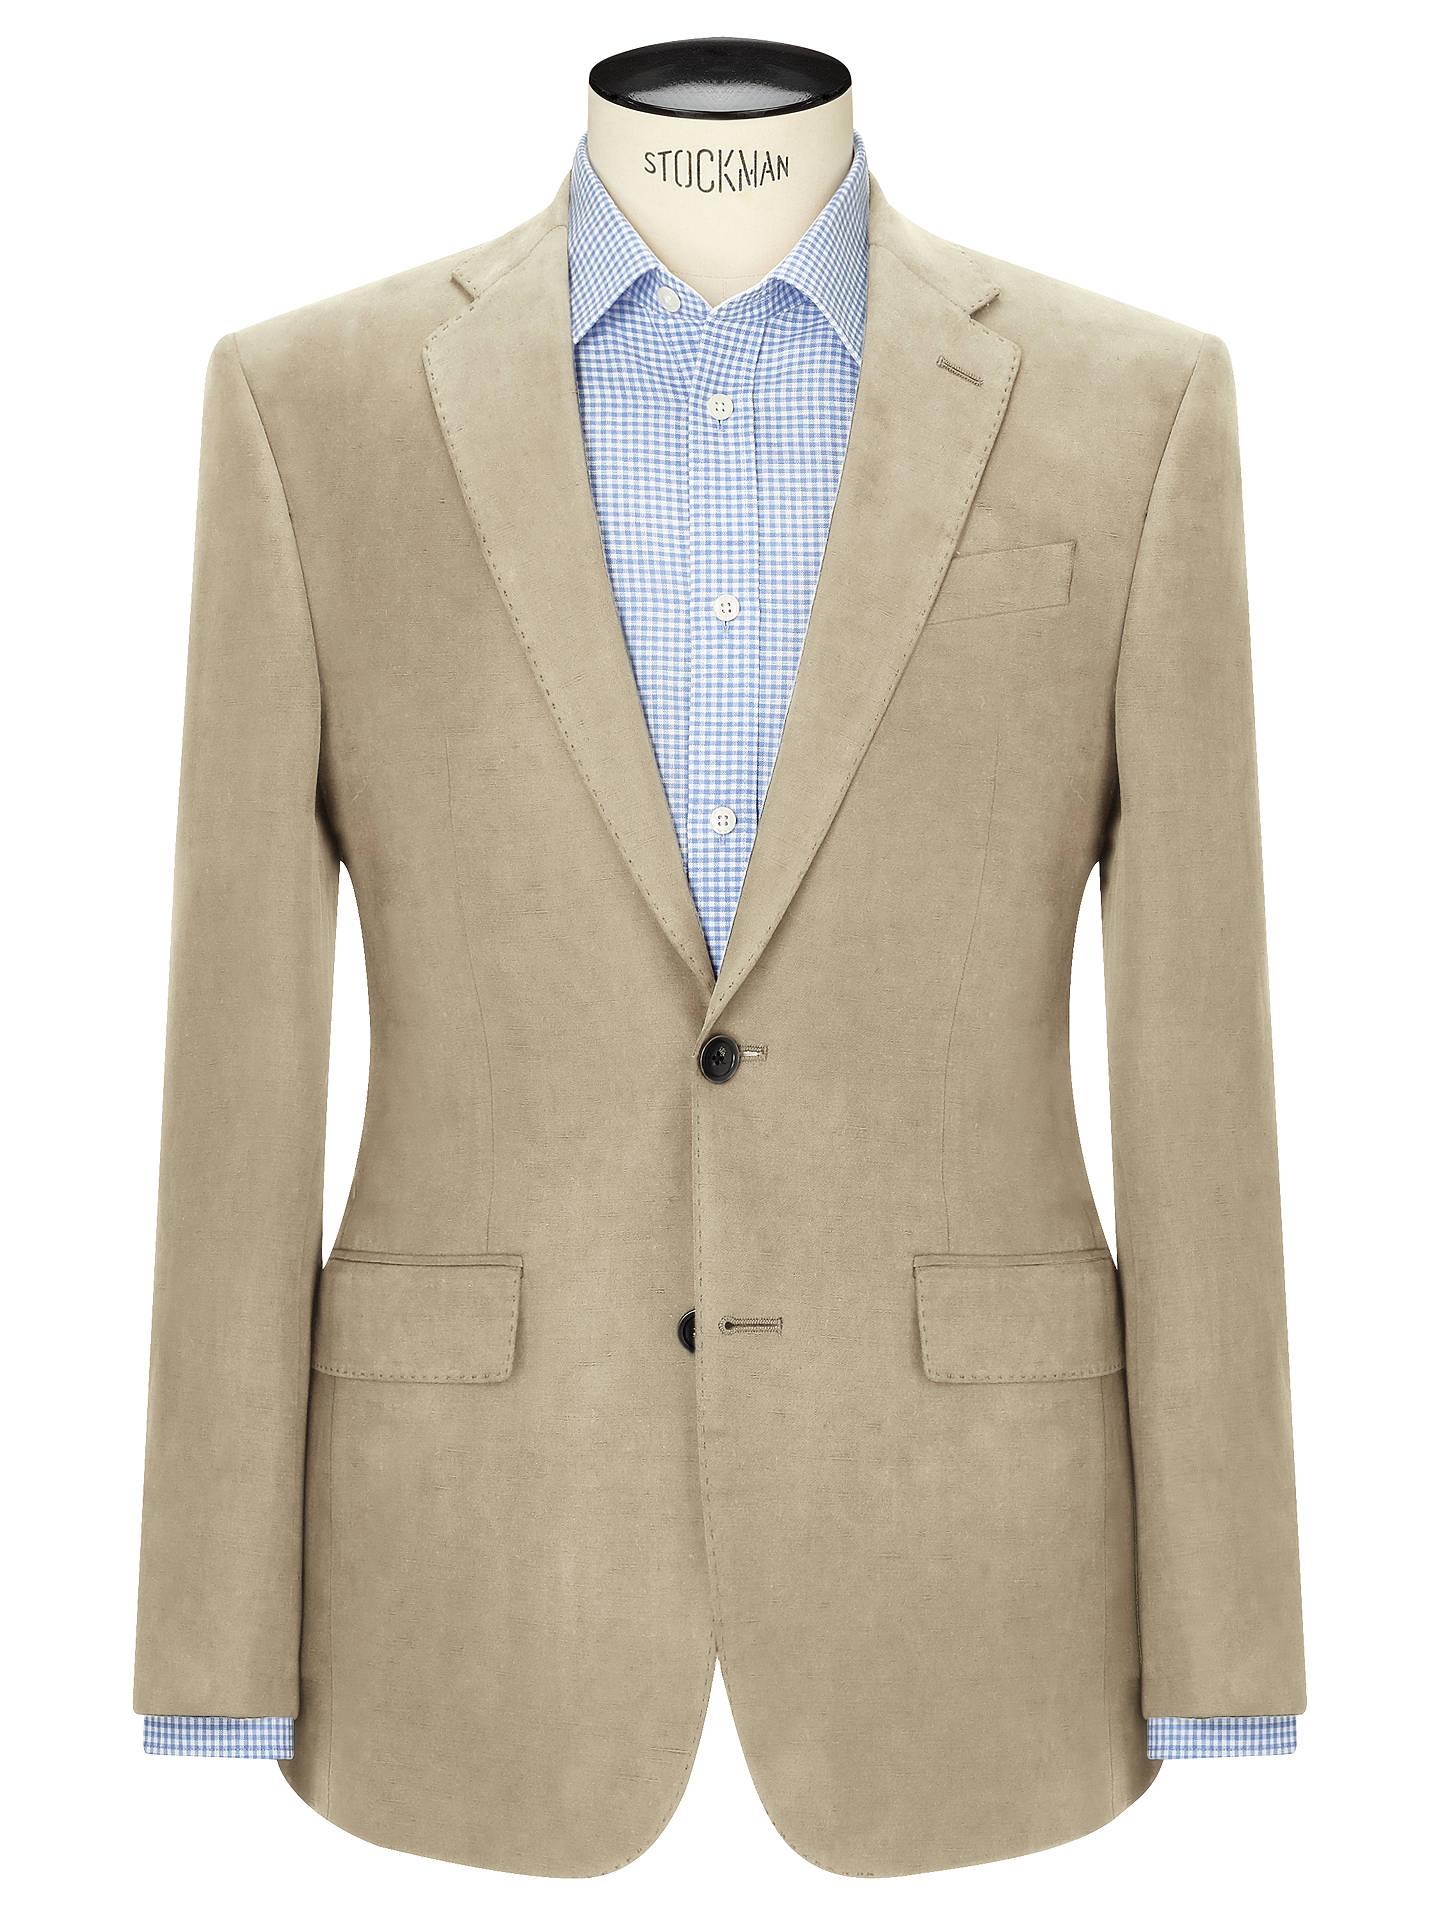 Buy John Lewis & Partners Silk Linen Regular Fit Suit Jacket, Stone, 36R Online at johnlewis.com